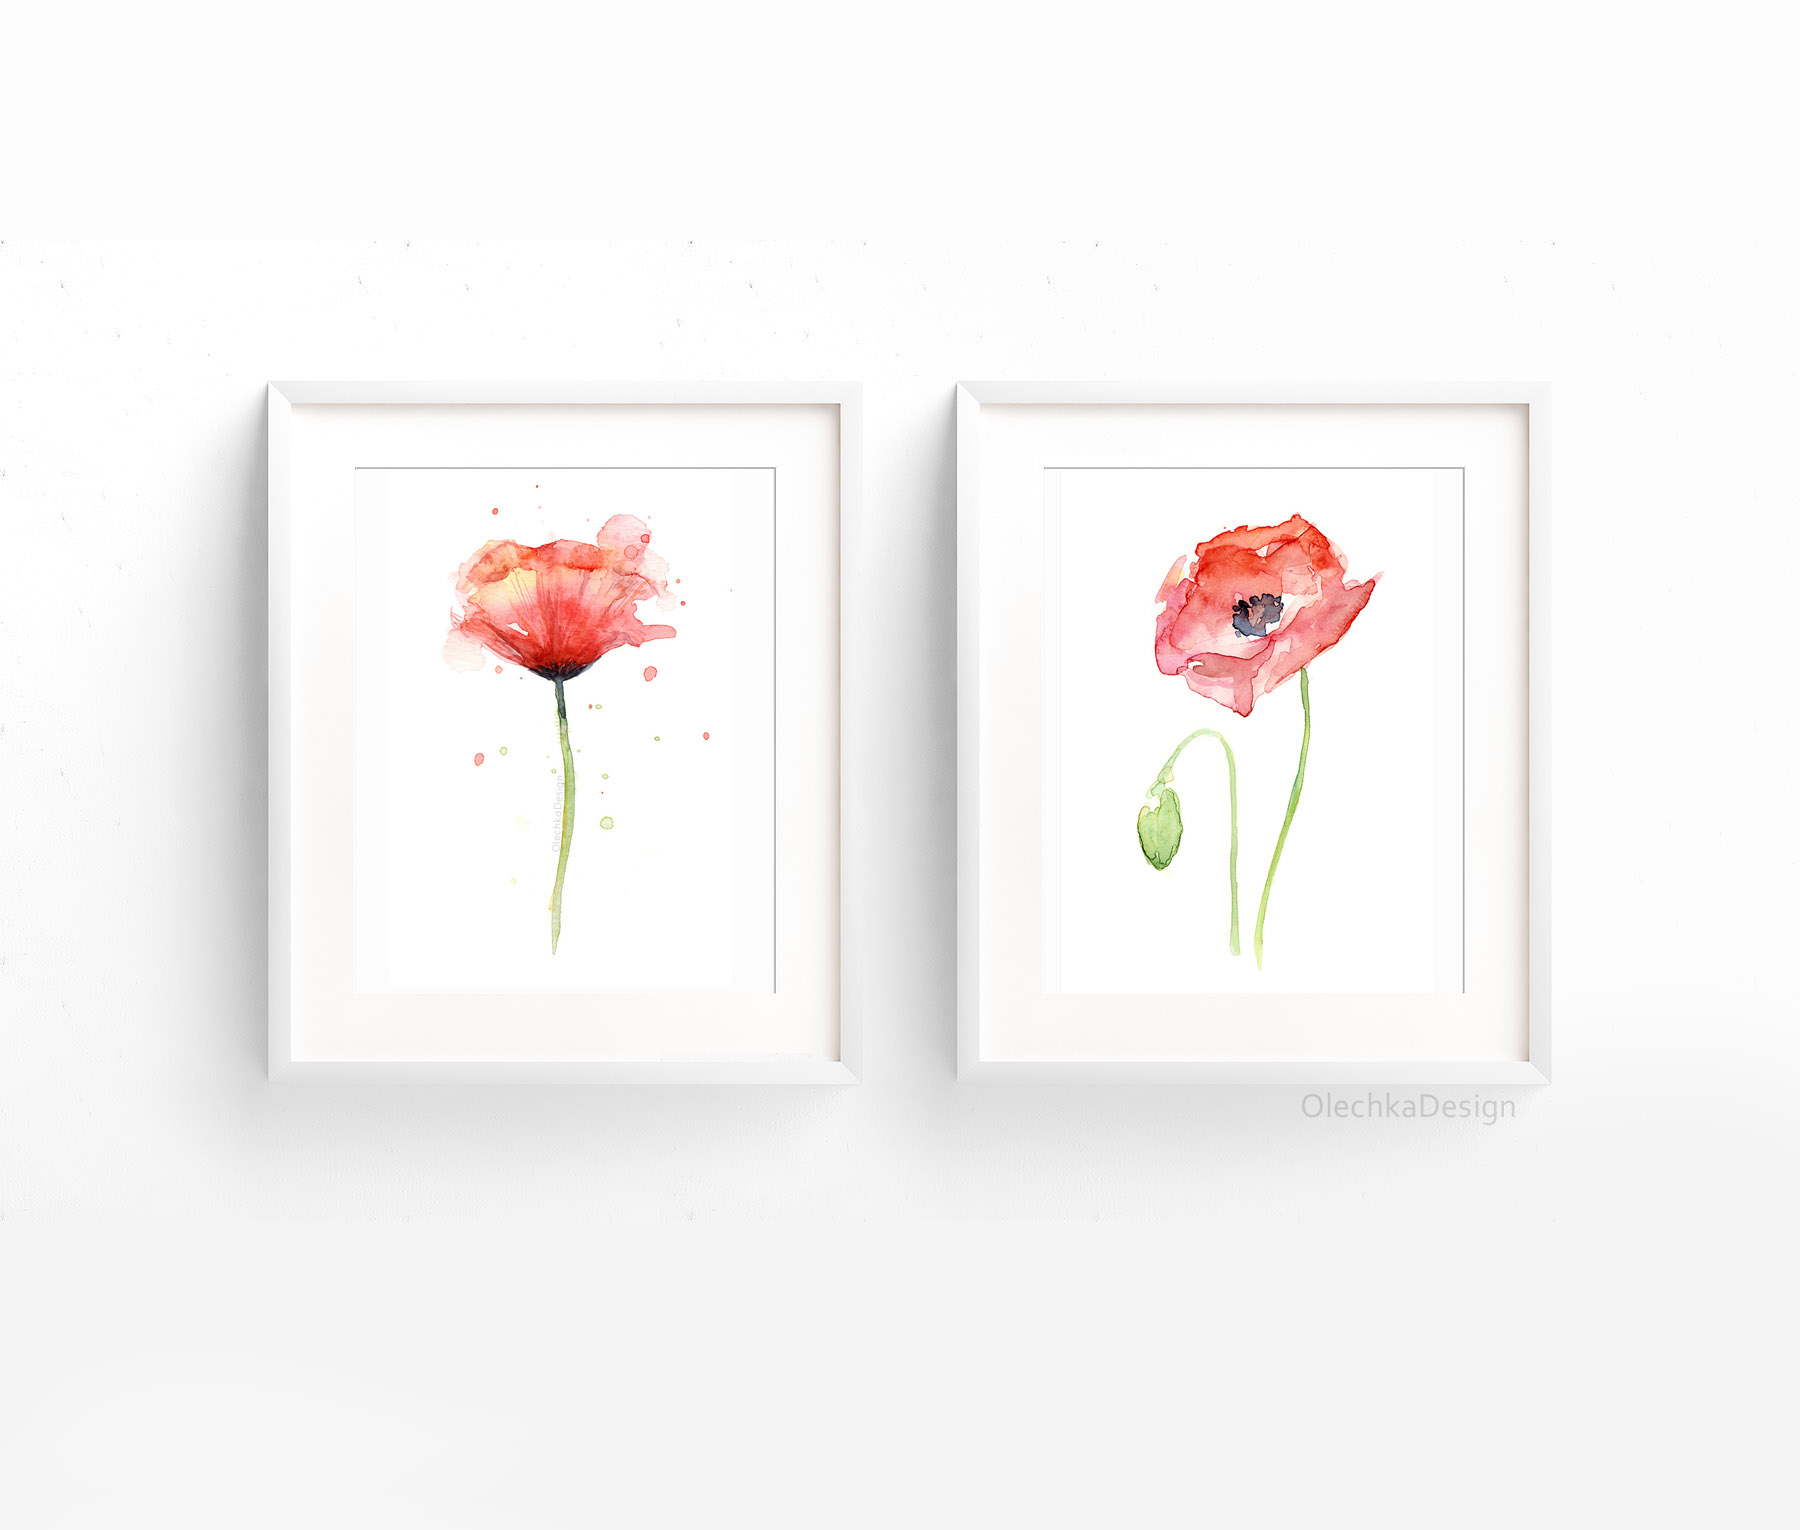 poppies-red-poppy-watercolor-prints-2.jpg